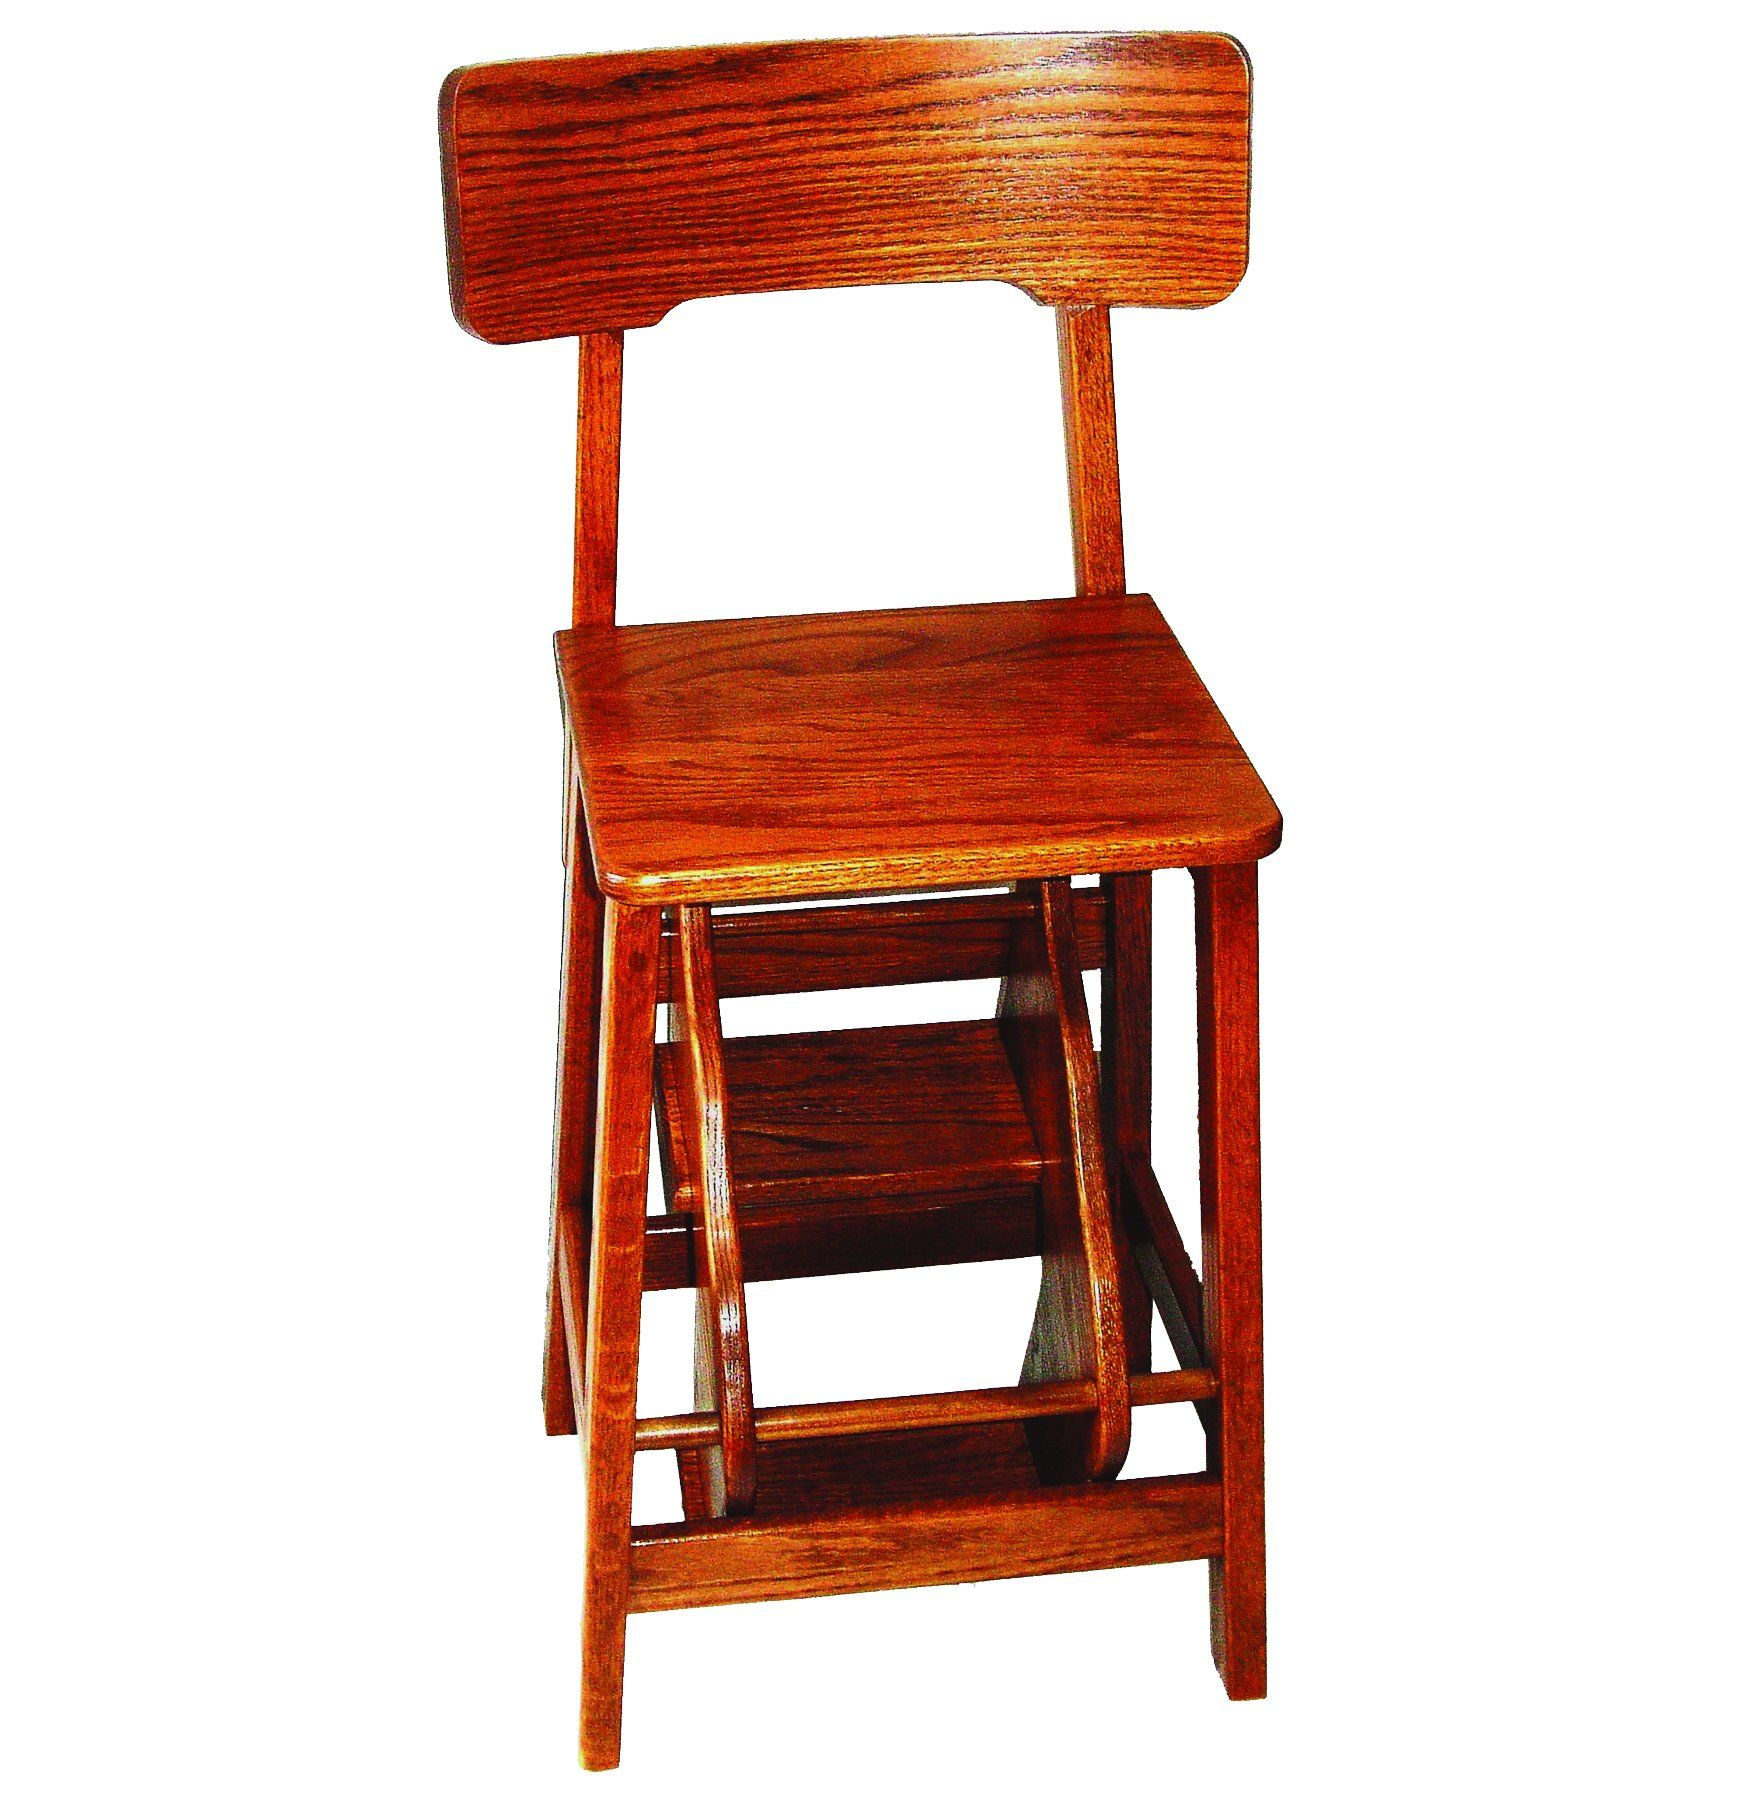 Surprising Step Stool W Back Products Stool Furniture Stools With Cjindustries Chair Design For Home Cjindustriesco